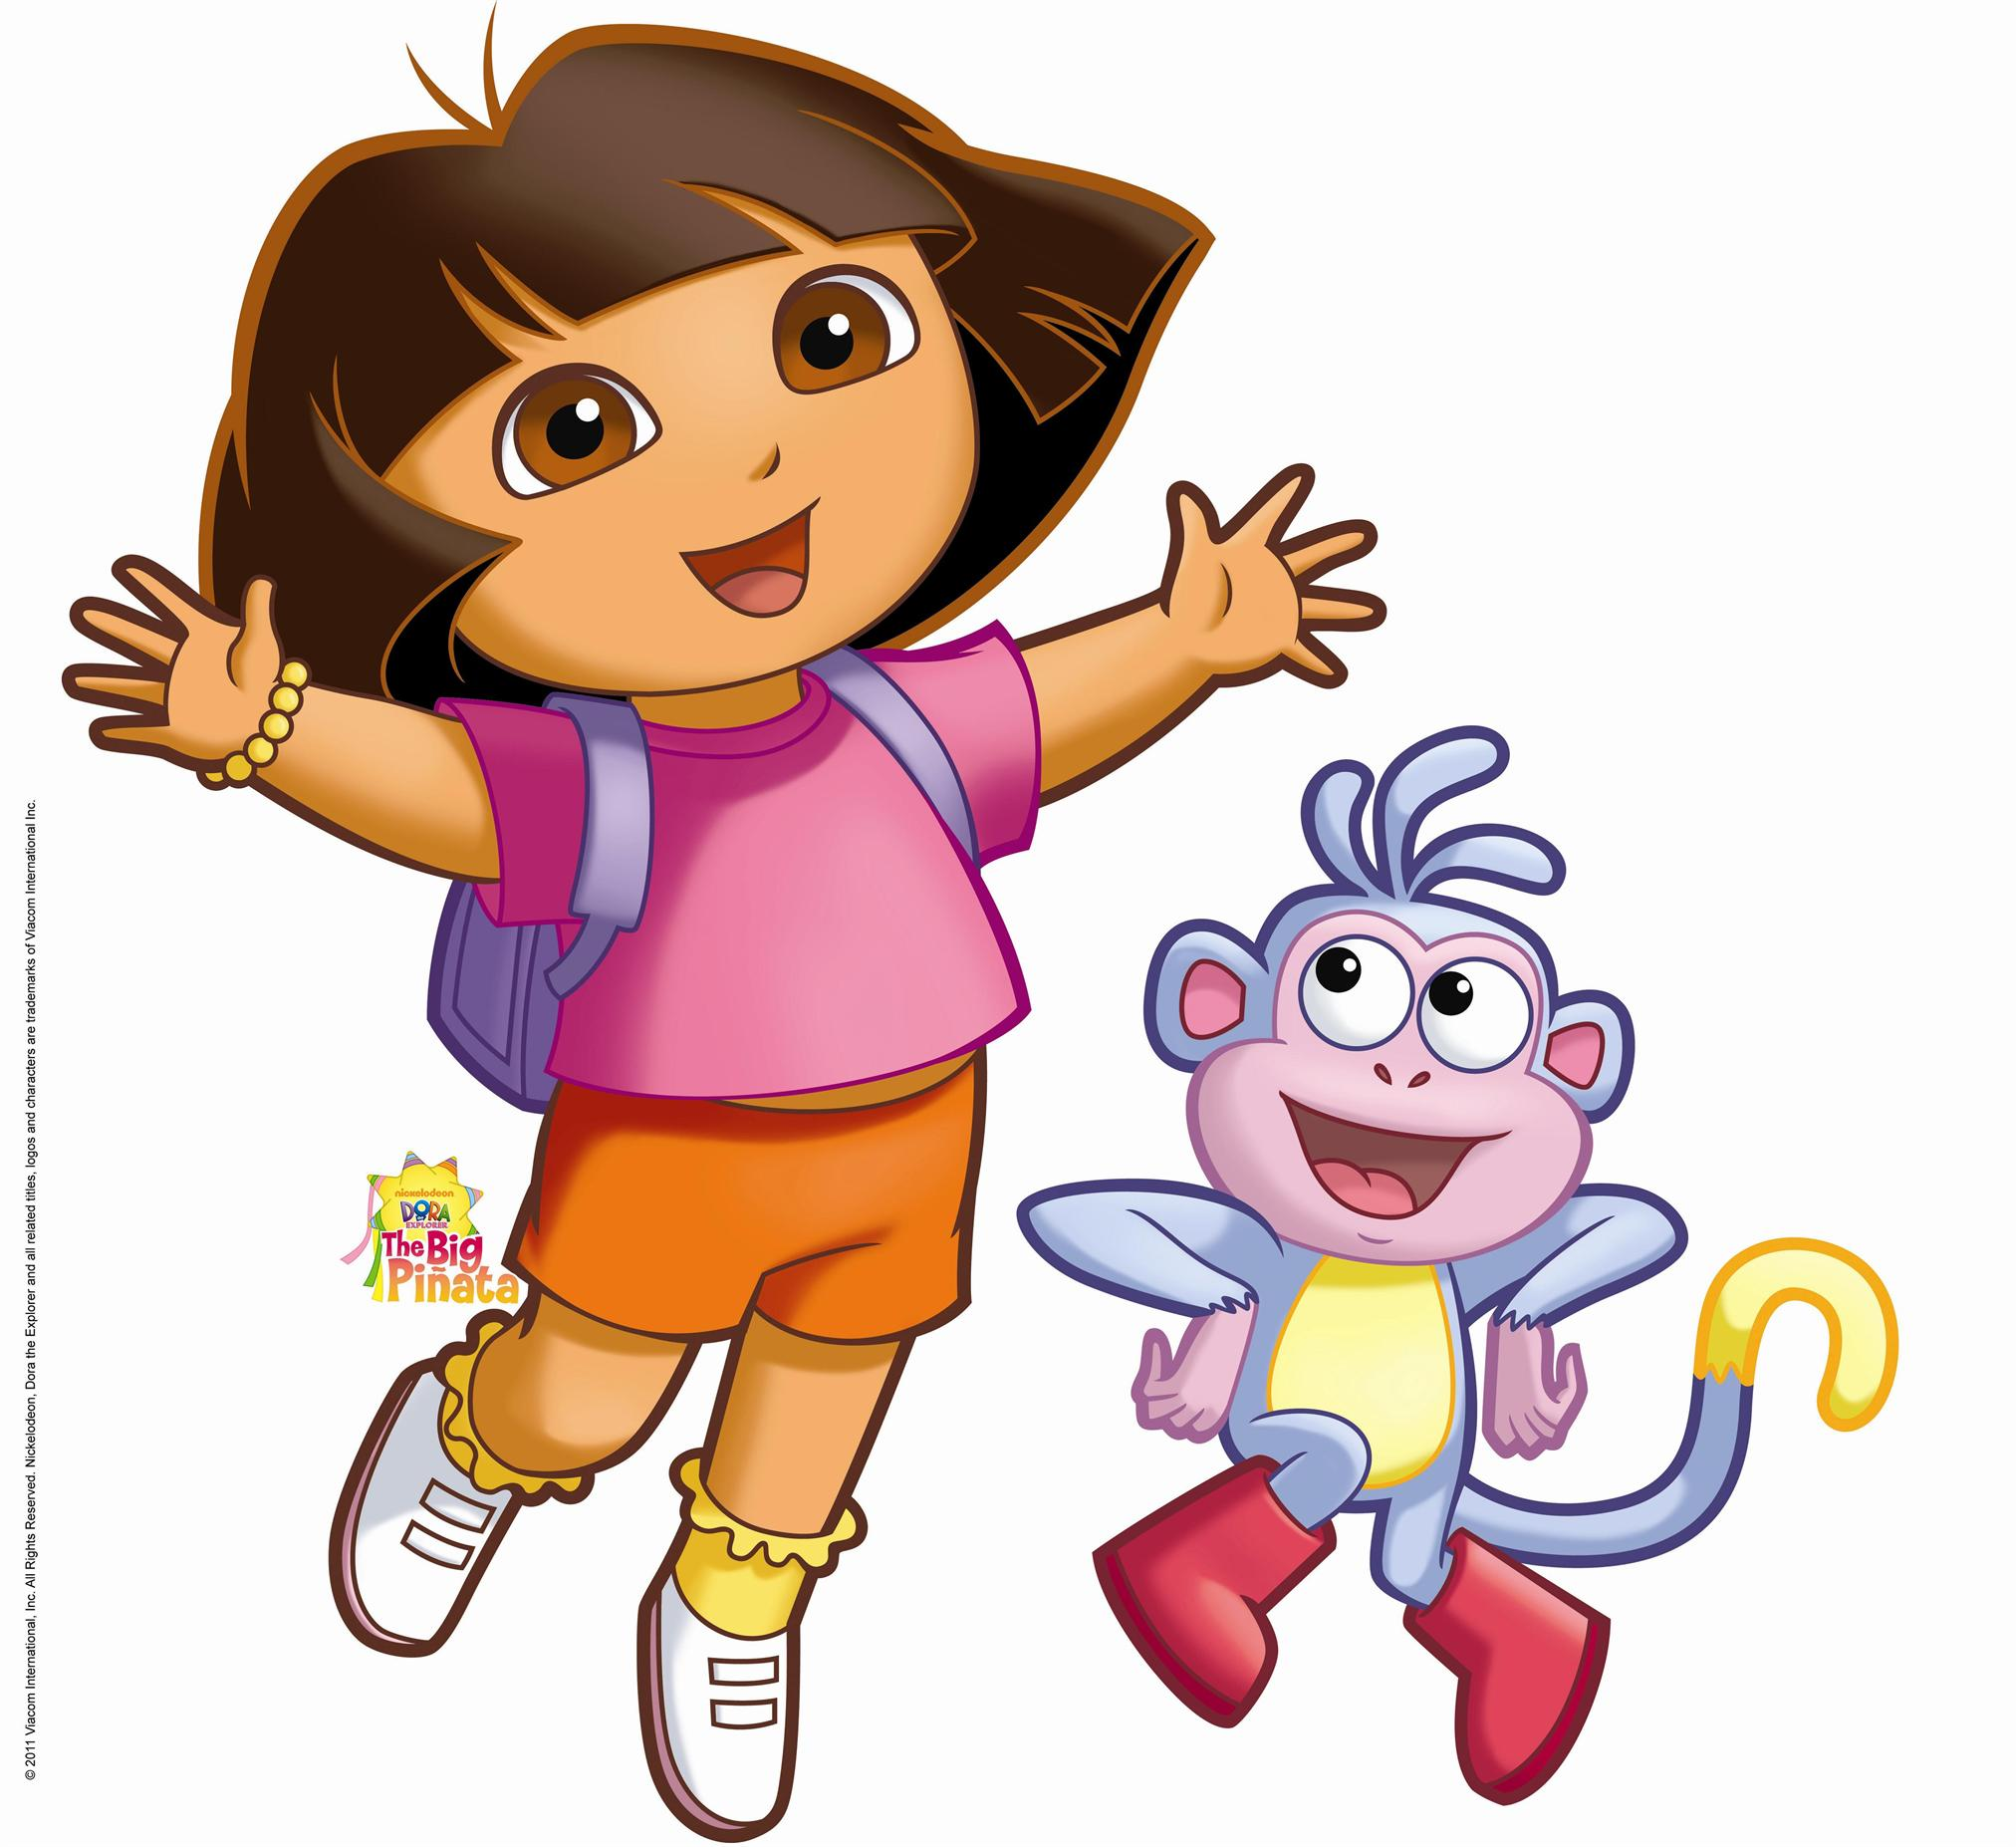 Dora the Explorer ee wallpaper 2024x1854 184644 2024x1854